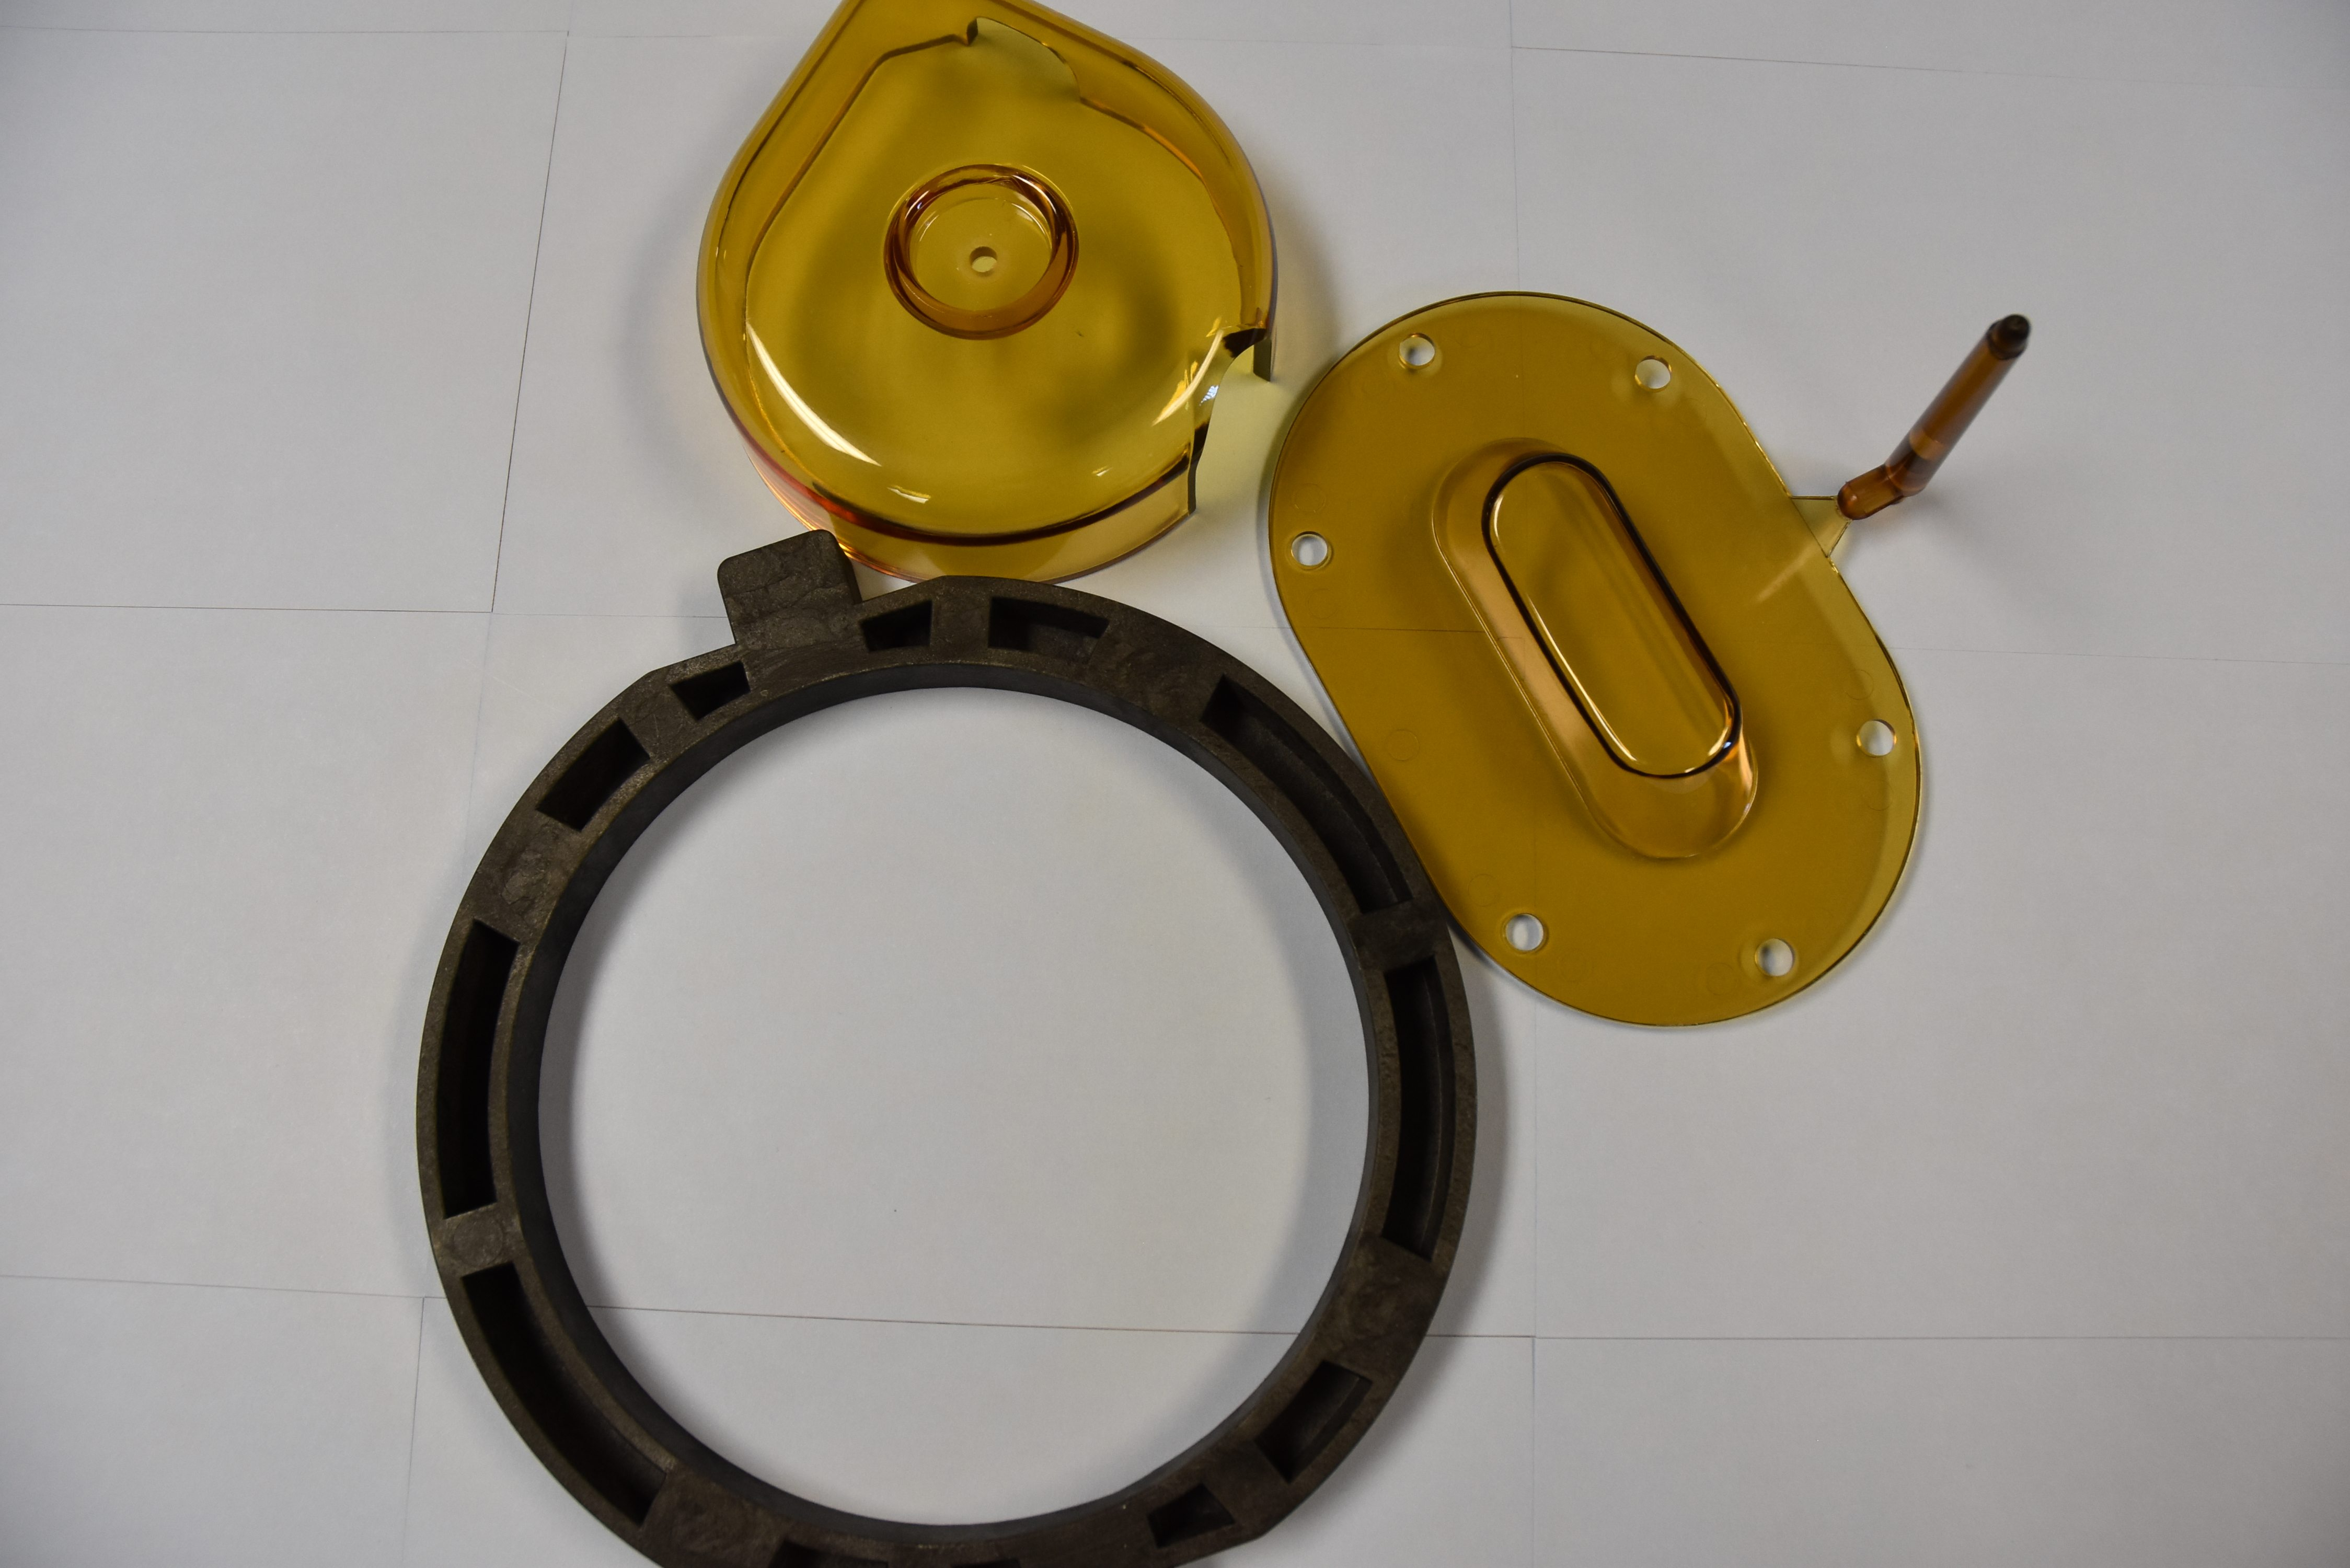 Injection Molding Image Gallery Plastic Molded Concepts